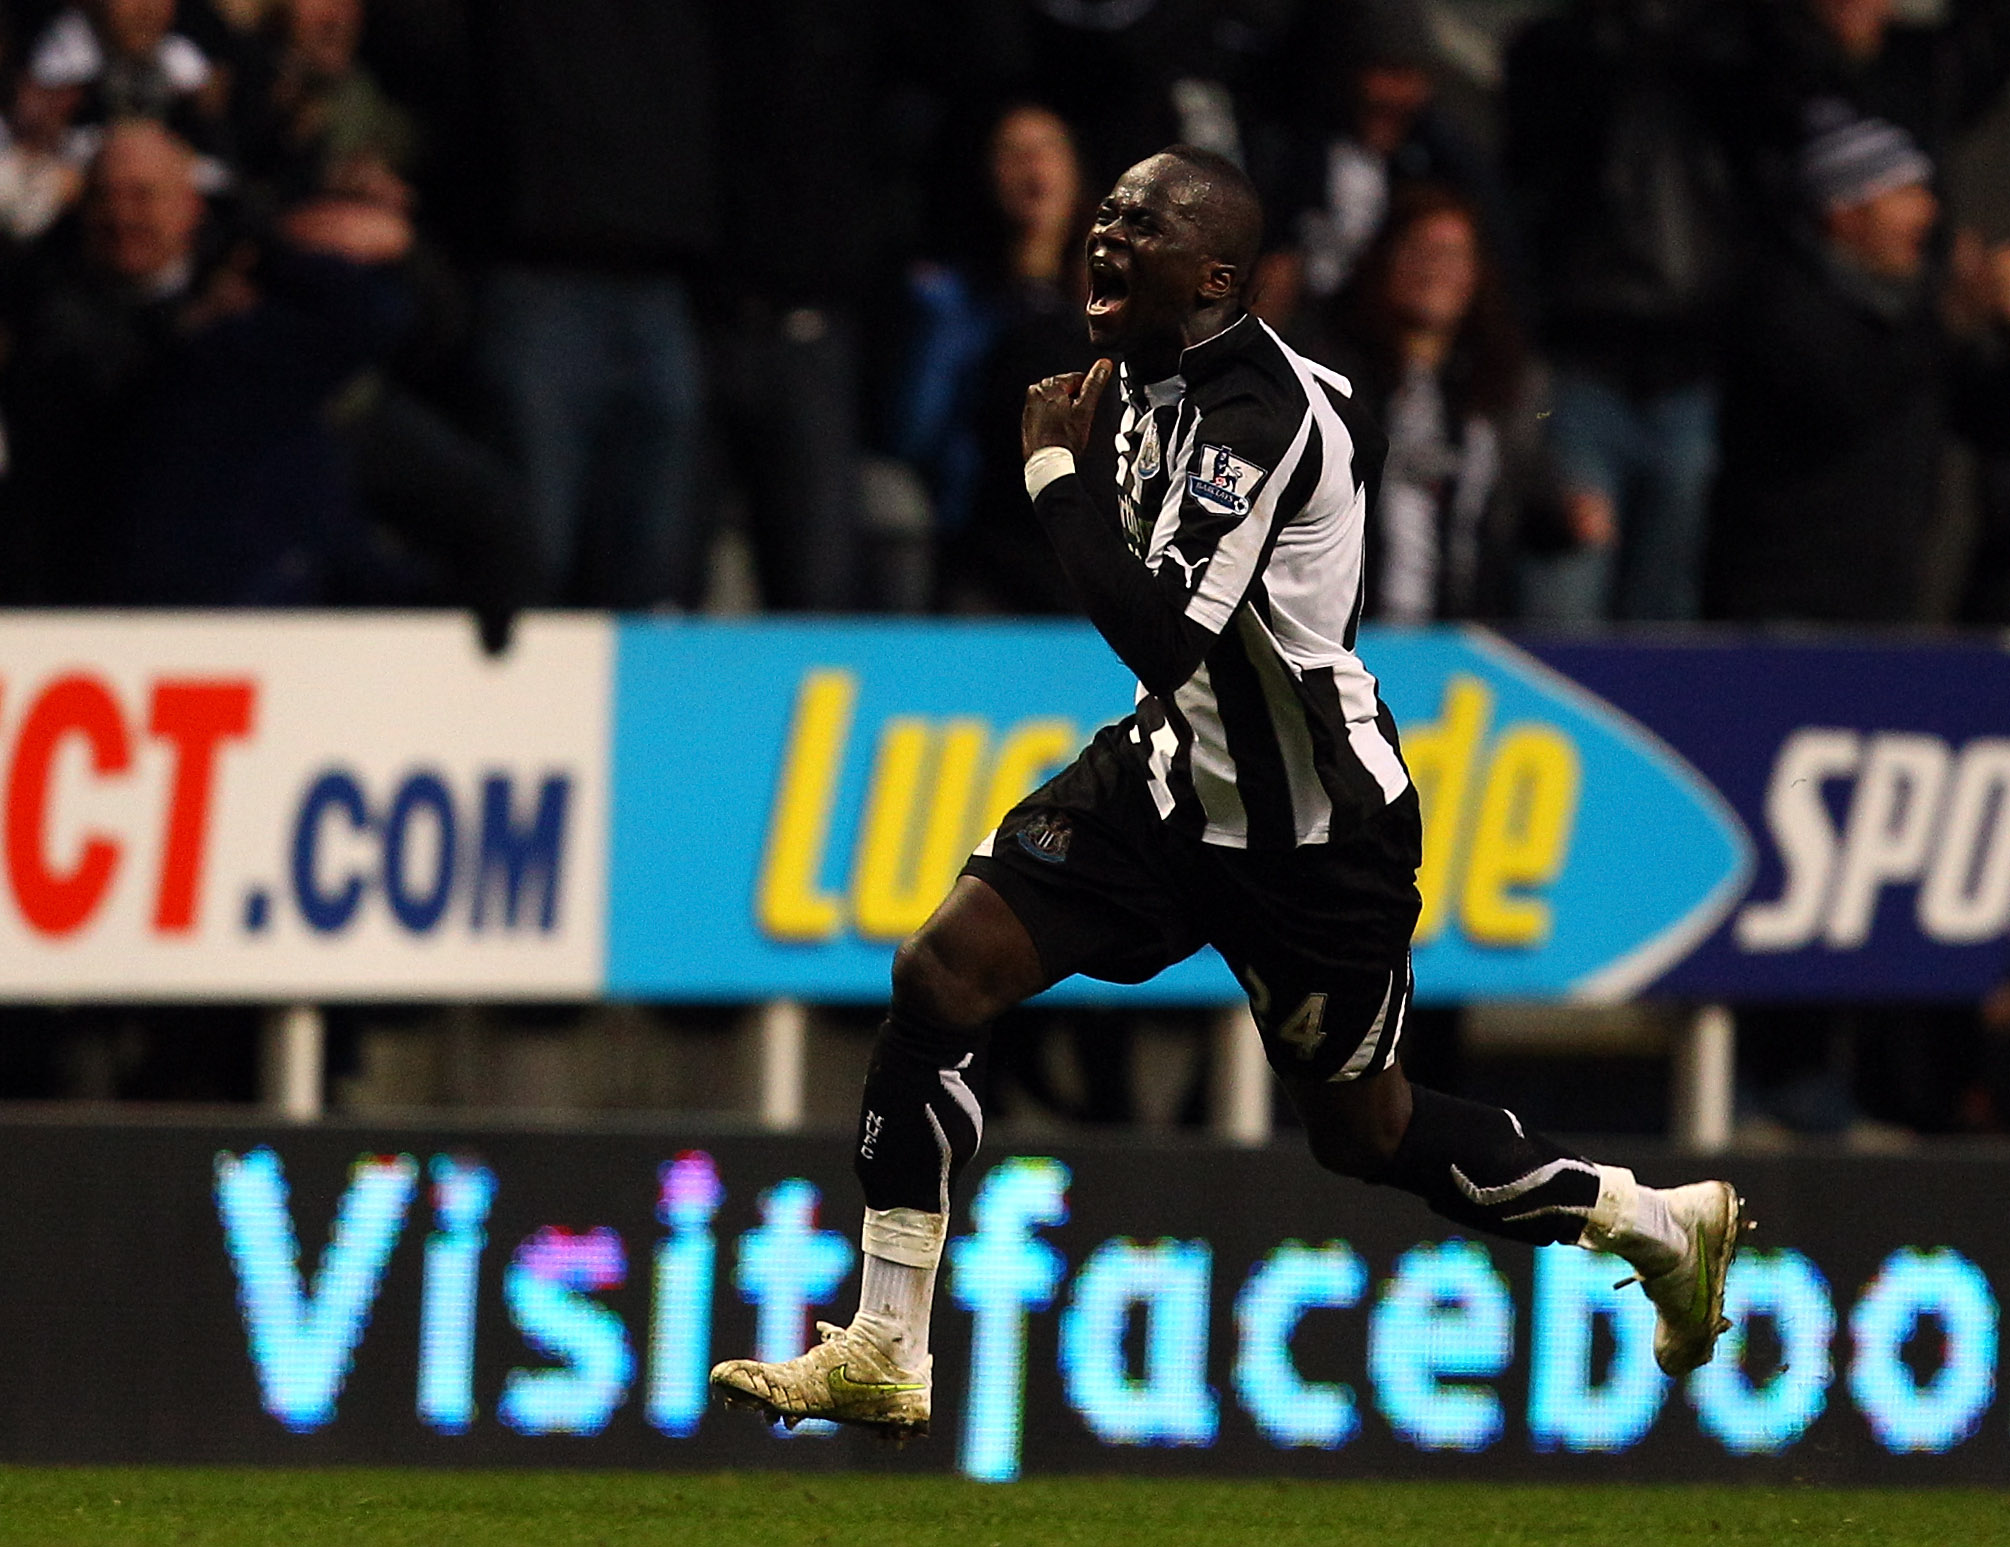 NEWCASTLE UPON TYNE, ENGLAND - FEBRUARY 05:  Cheik Tiote of Newcastle celebrates scoring the fourth and equalising goal during the Barclays Premier League match between Newcastle United and Arsenal at St James' Park on February 5, 2011 in Newcastle upon T